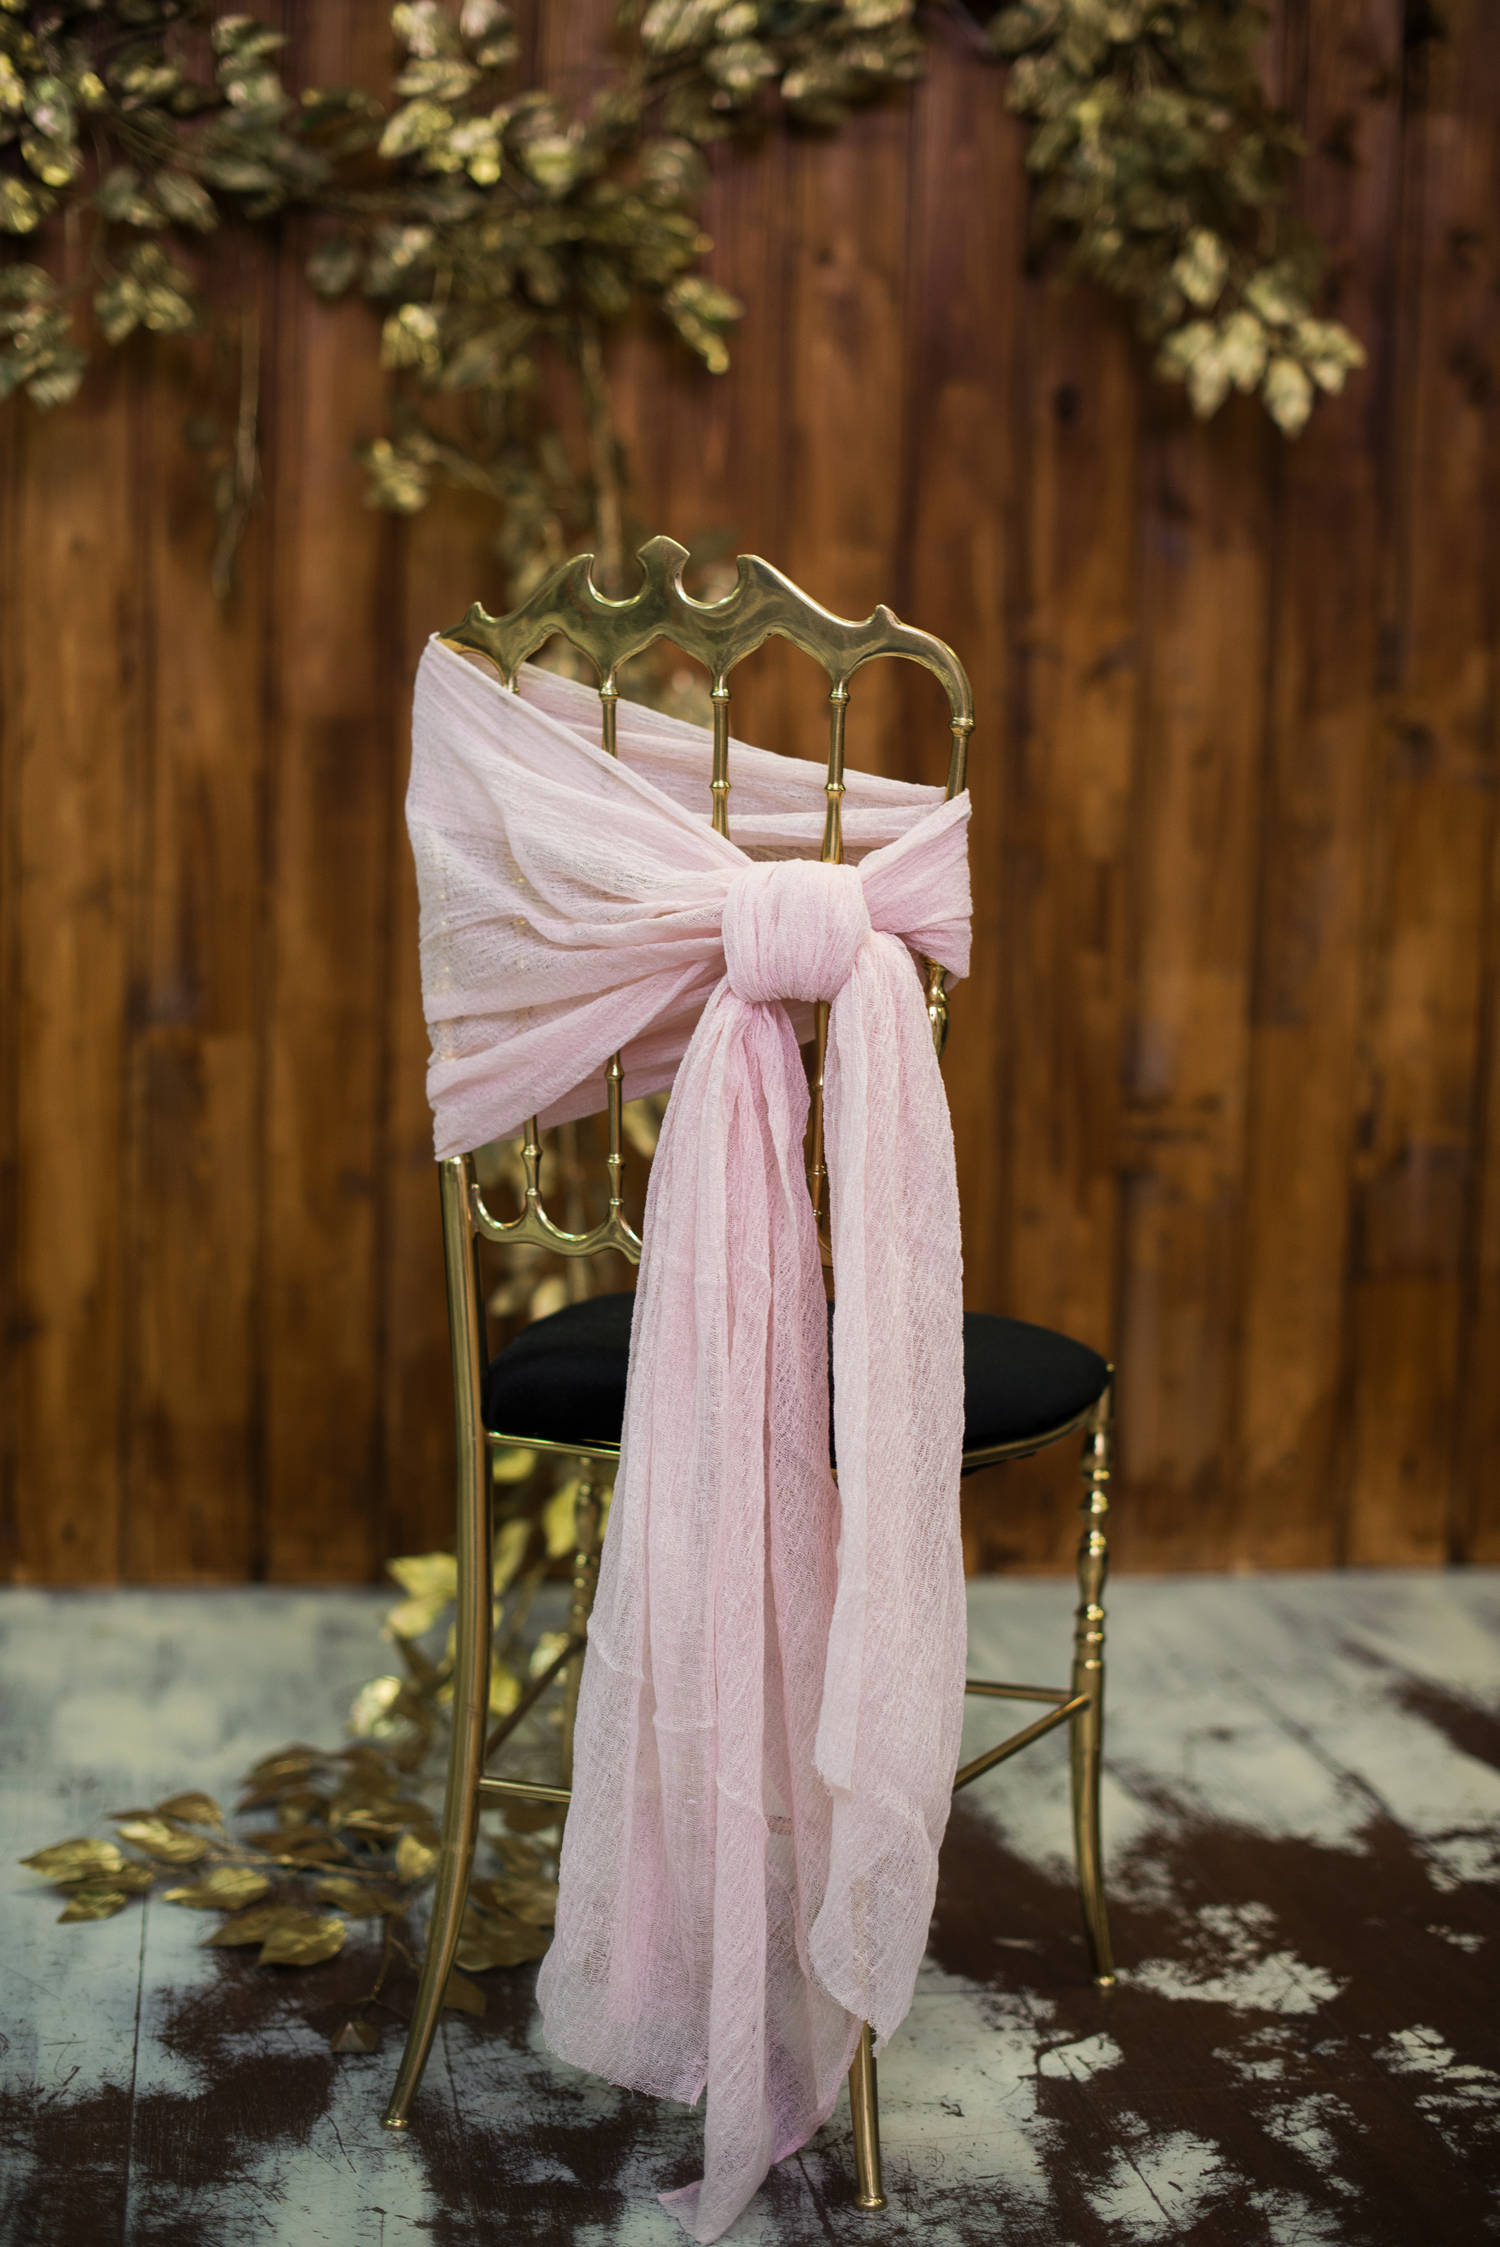 Chair Sashes Gauze sash Chair cover Wedding chair decorations Blush chiffon sash Cheesecloth chair cover Rustic wedding decor Beach wedding.jpg